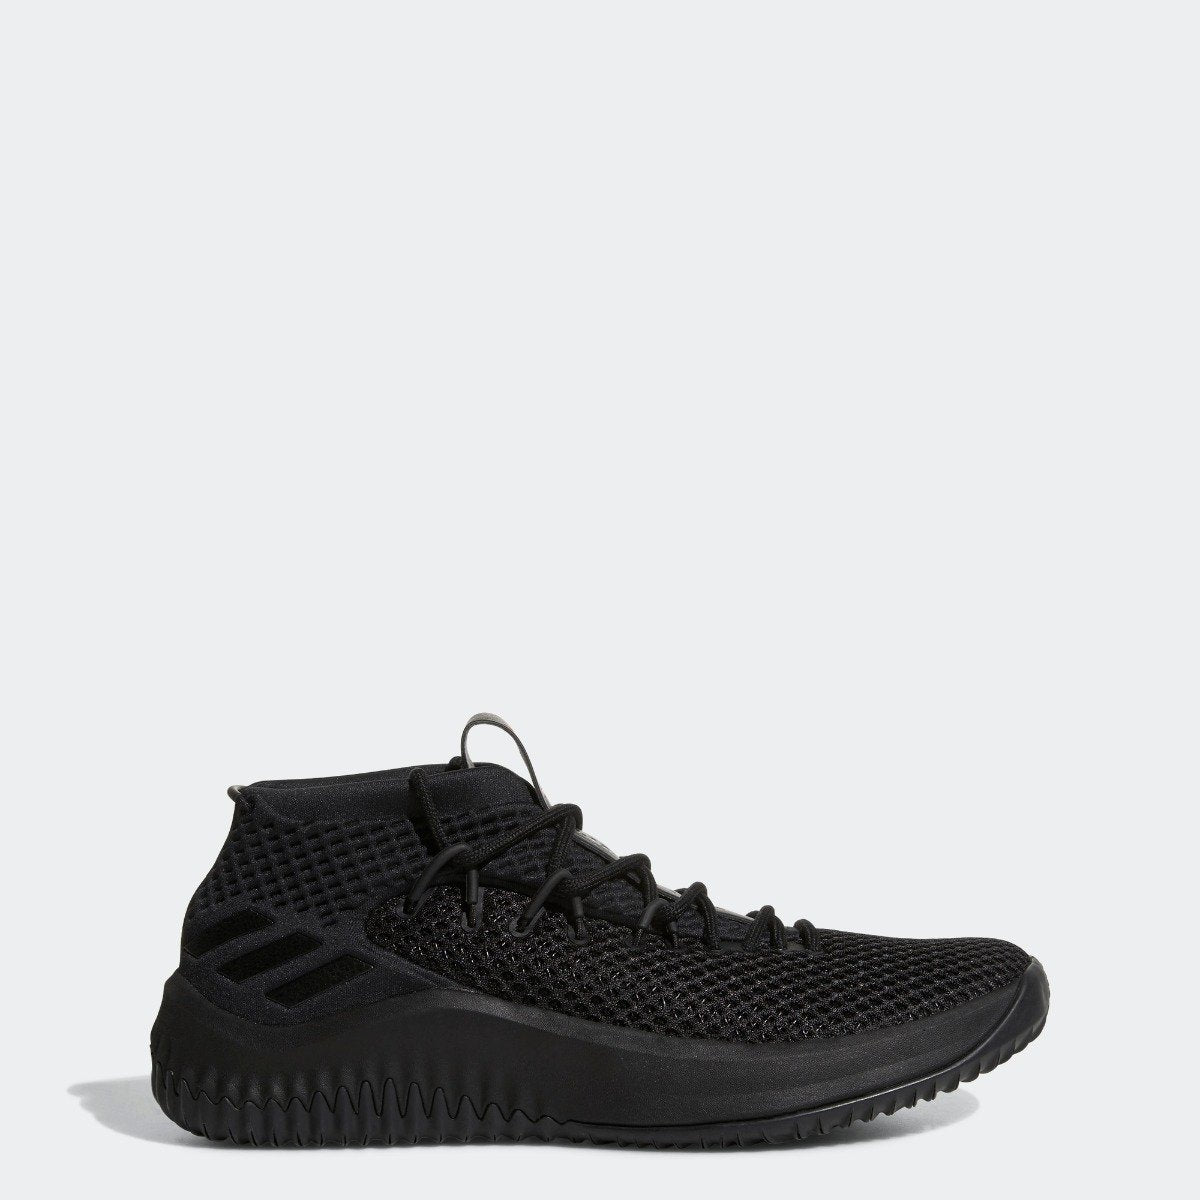 915e9b1e352 Men s adidas Dame 4 Basketball Shoes Core Black with Scarlet BW1518 ...